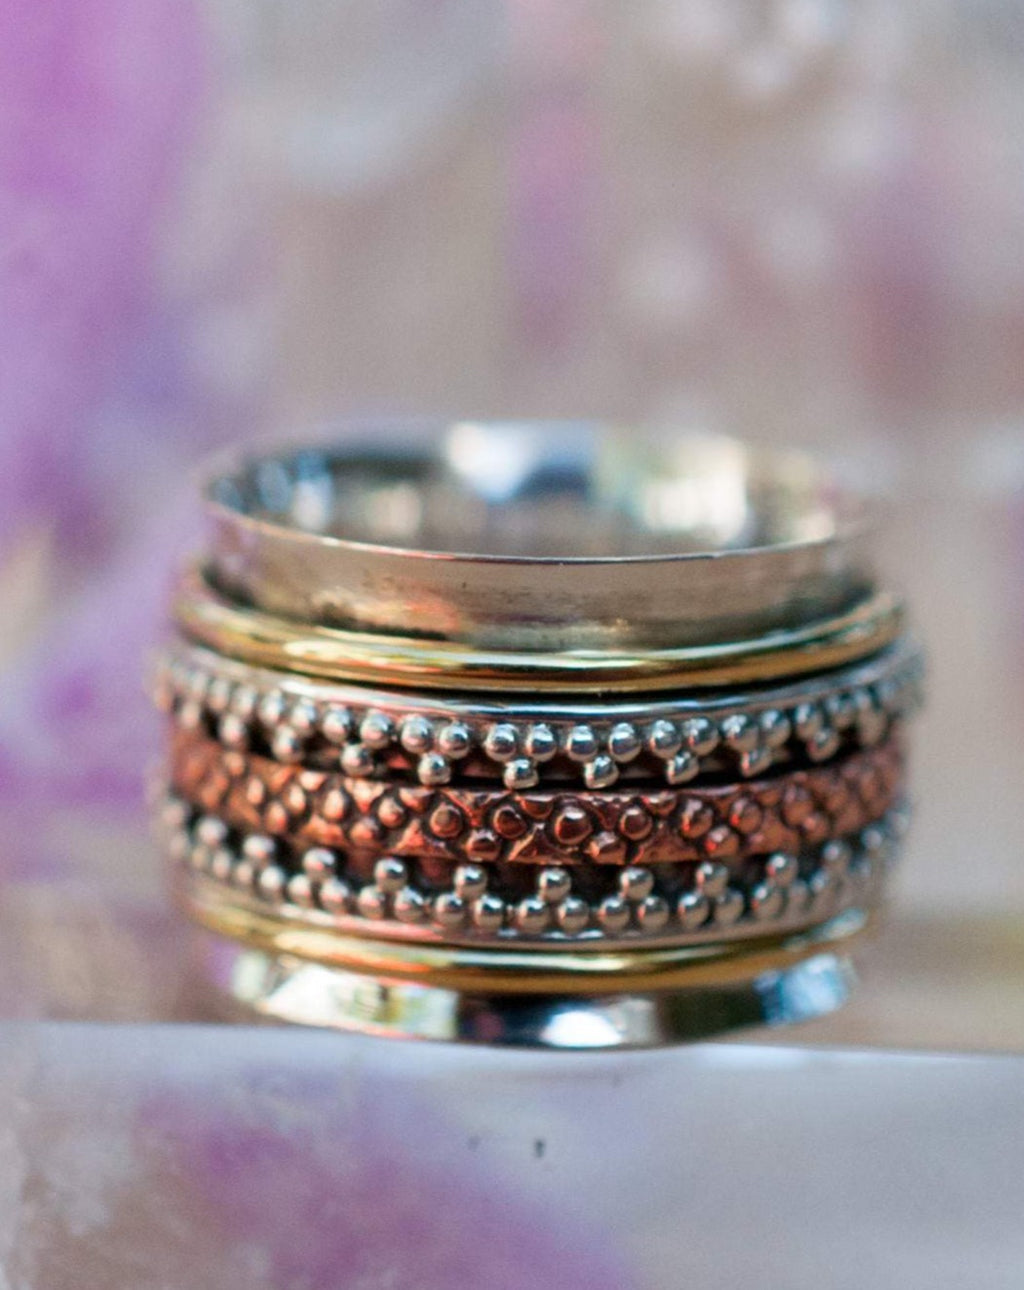 Meditation Ring * Spinner * Spinning * Anxiety * Worry * Boho * Spin * Thick Band * Sterling Silver 925 * Copper * Bronze * Handmade*BJS037